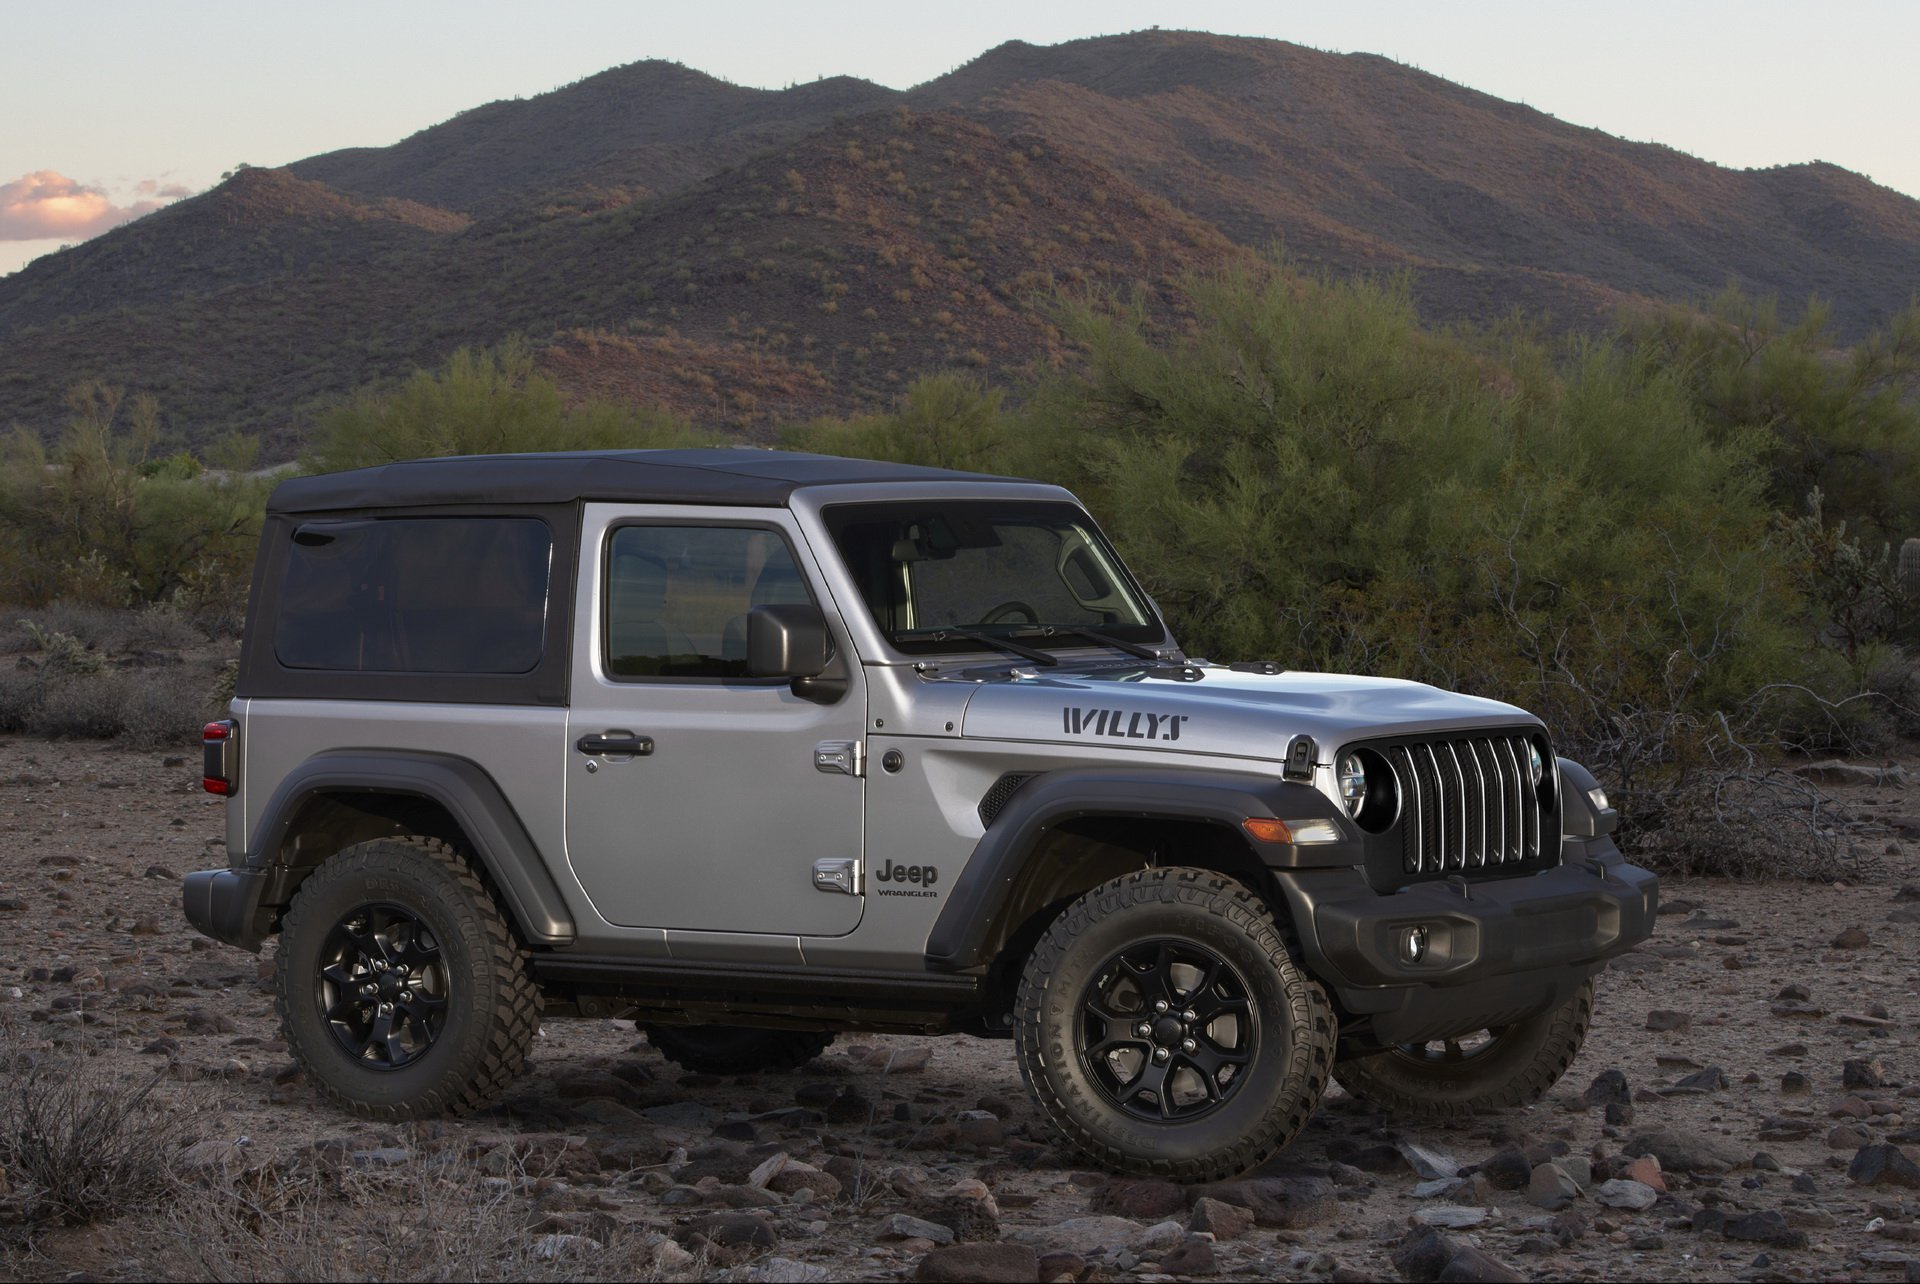 59f712d1-2020-jeep-wrangler-two-special-editions-4